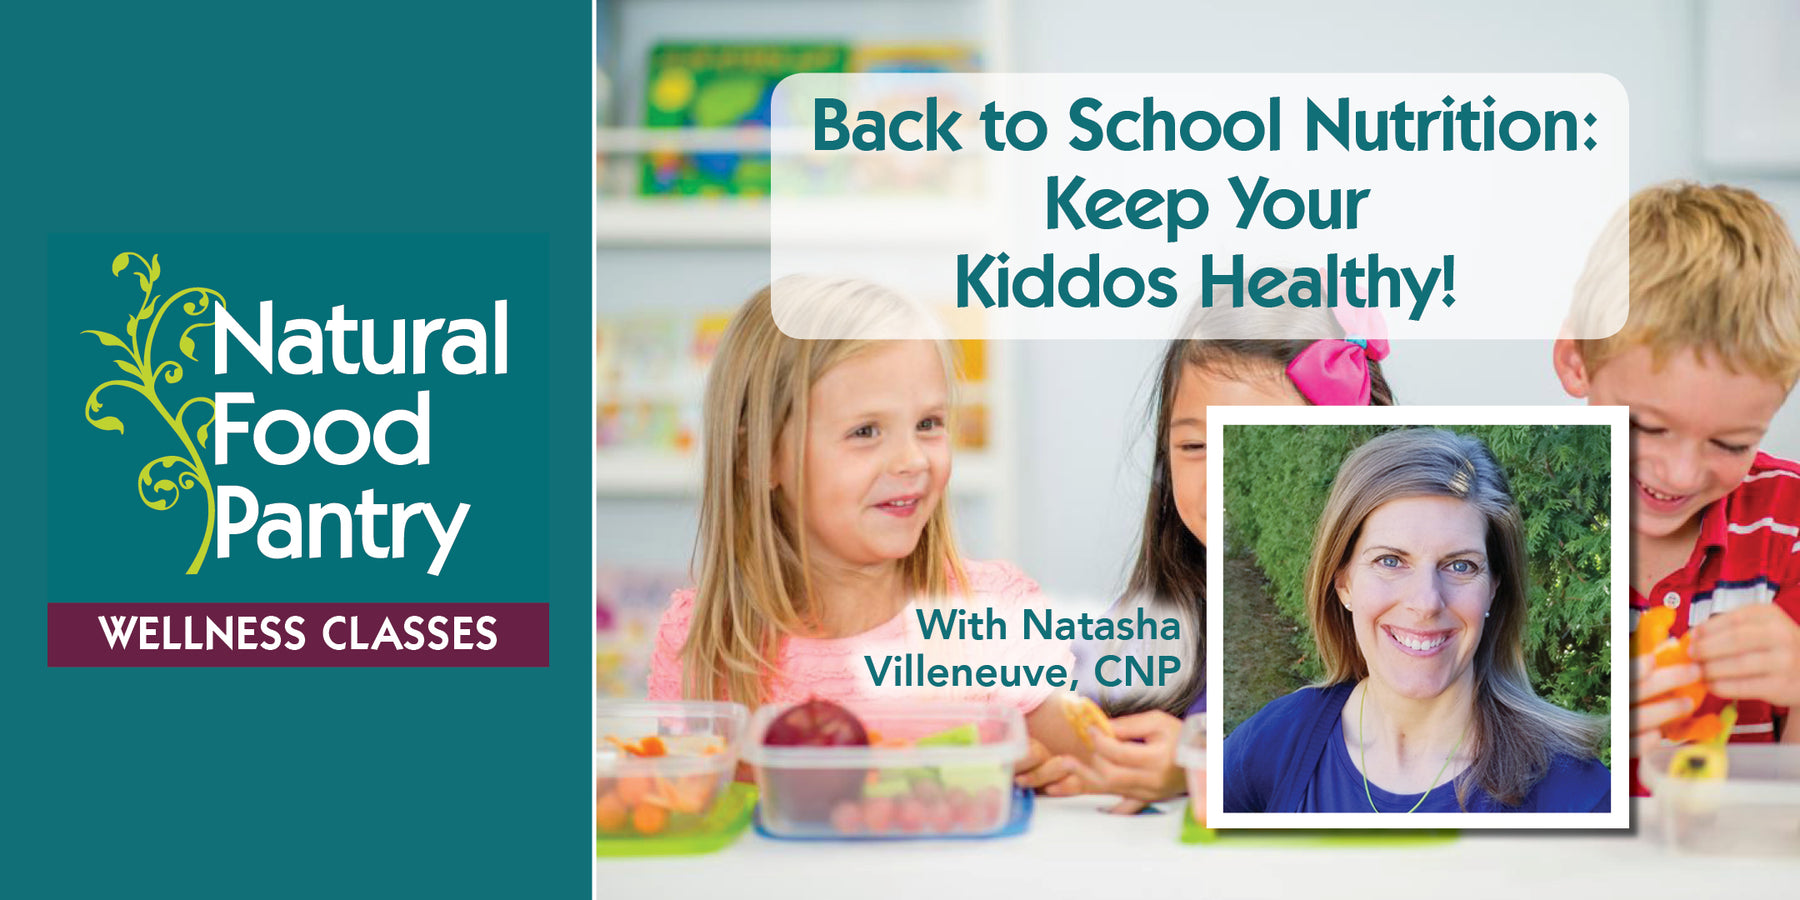 Aug 15: Back to School Nutrition - Keep your kiddos healthy!